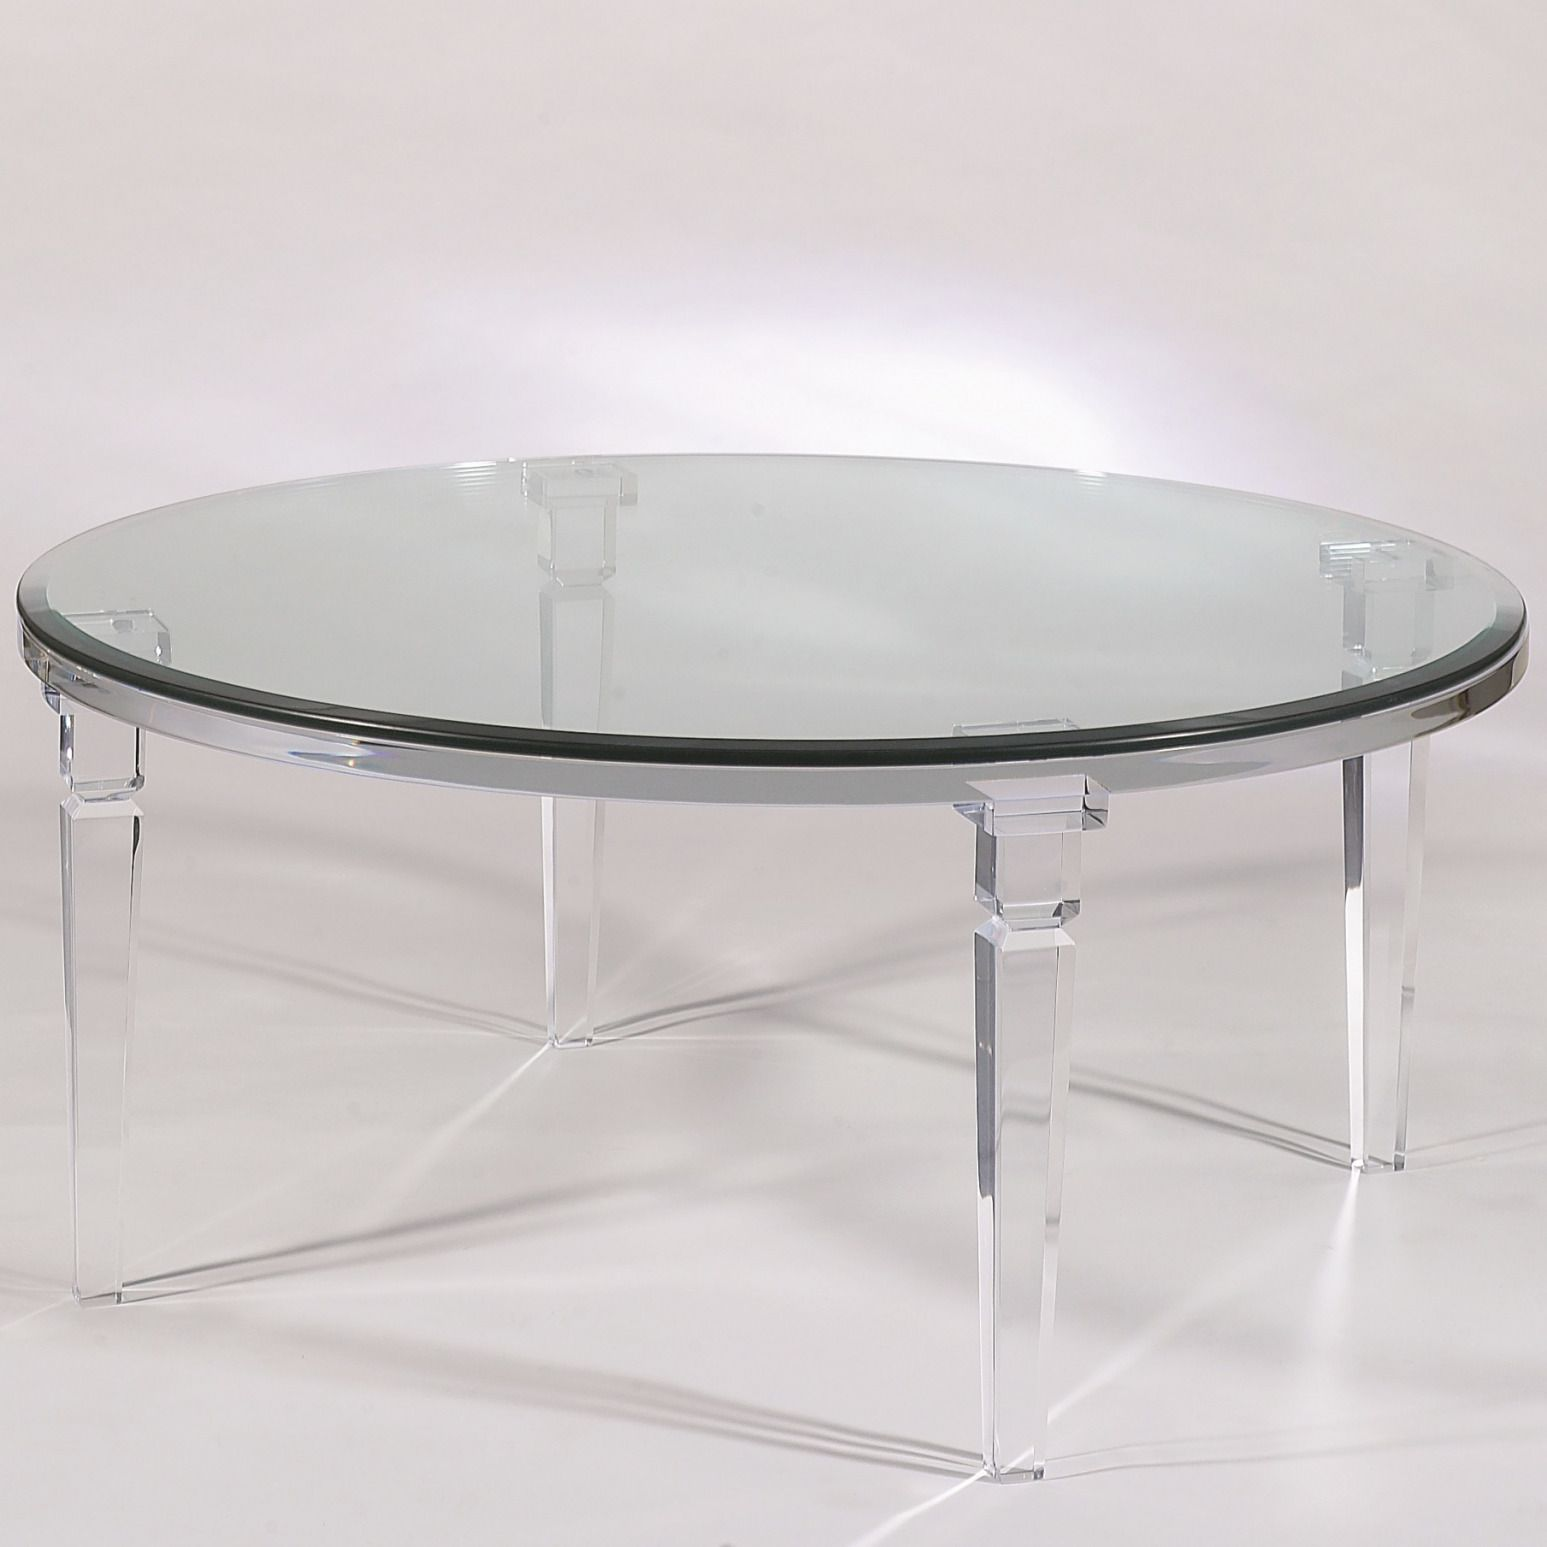 100 Round Lucite Coffee Table Best Paint For Furniture Check More At Http